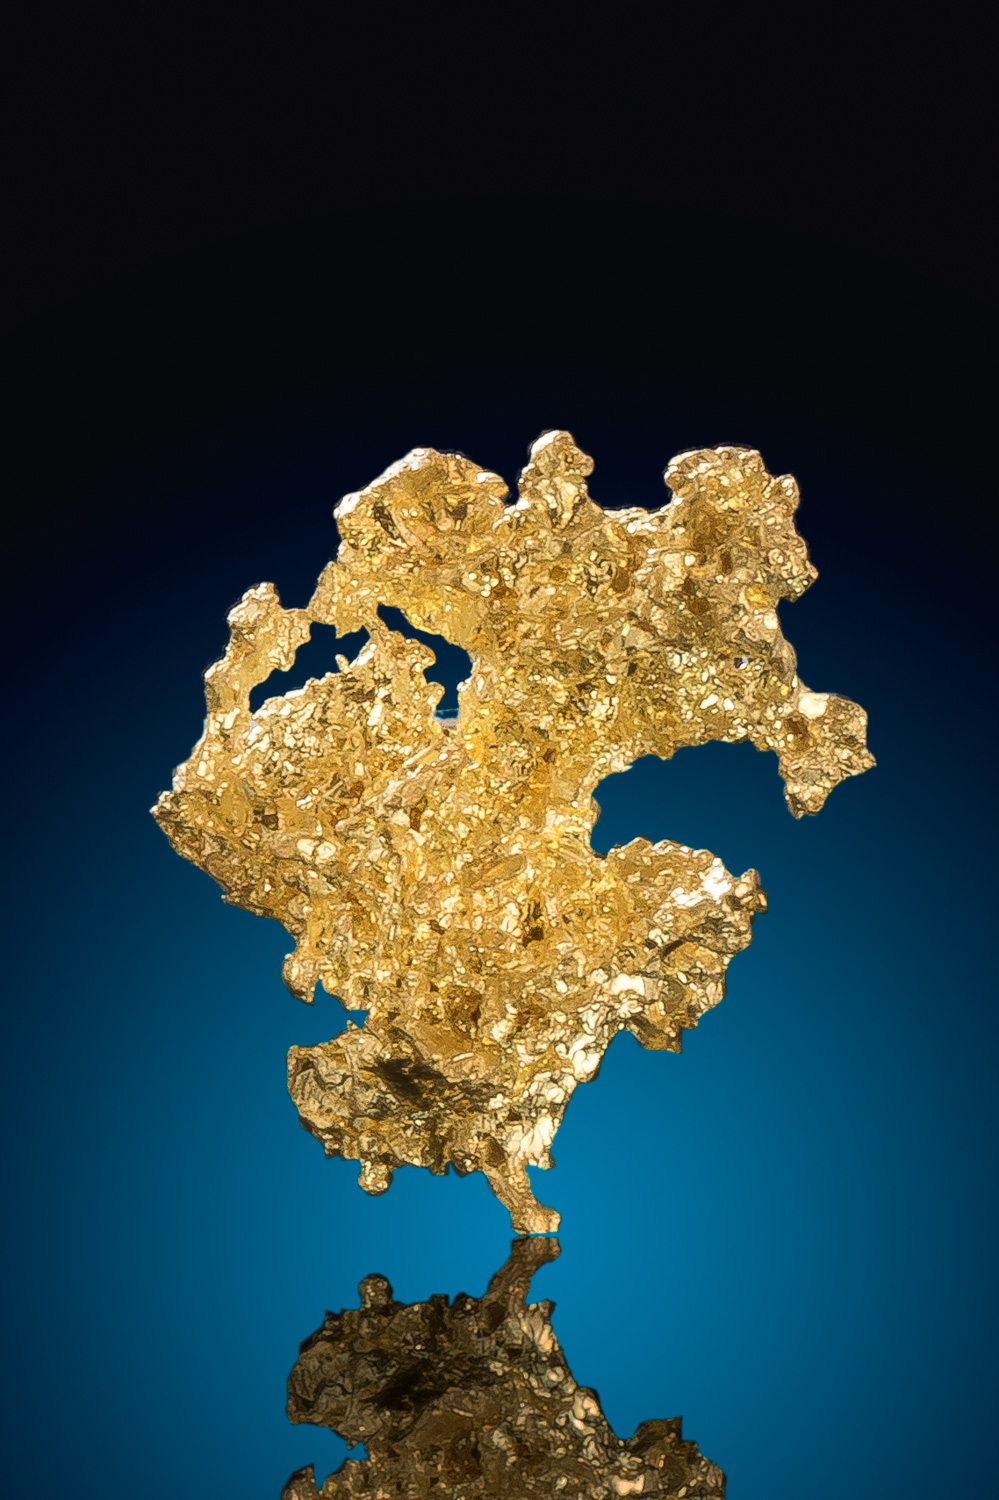 Rounded and Intricate - Crystalline Gold Nugget - Eagles Nest